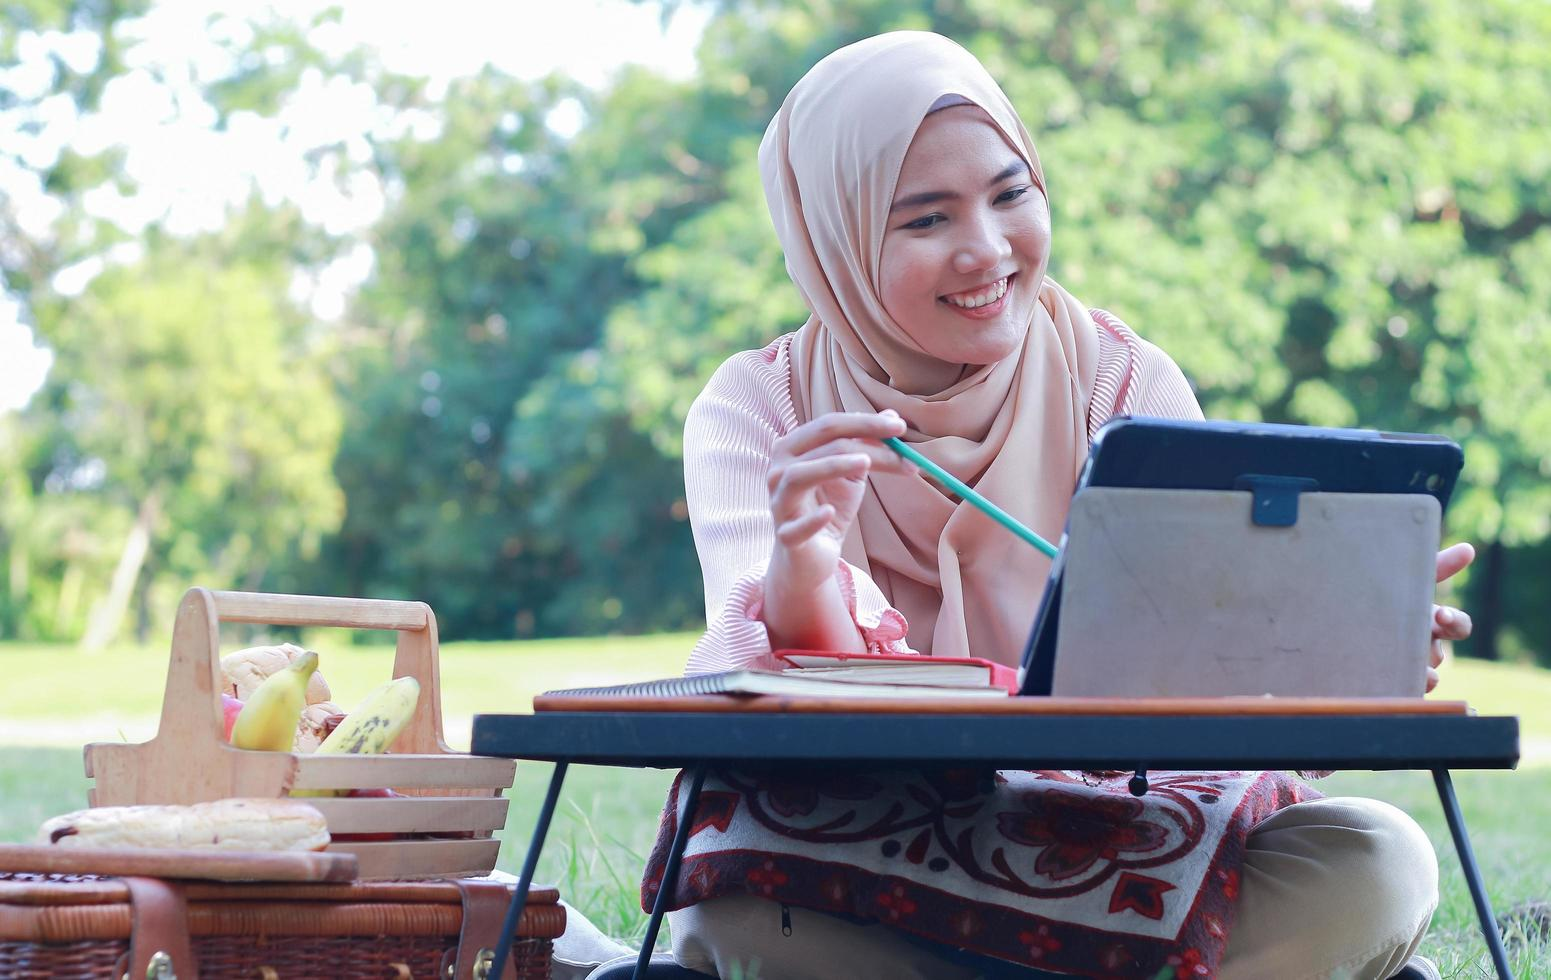 Beautiful Muslim girl sitting happily in the park. Muslim woman smiling in garden lawn. Lifestyle concept of a  confident modern woman photo